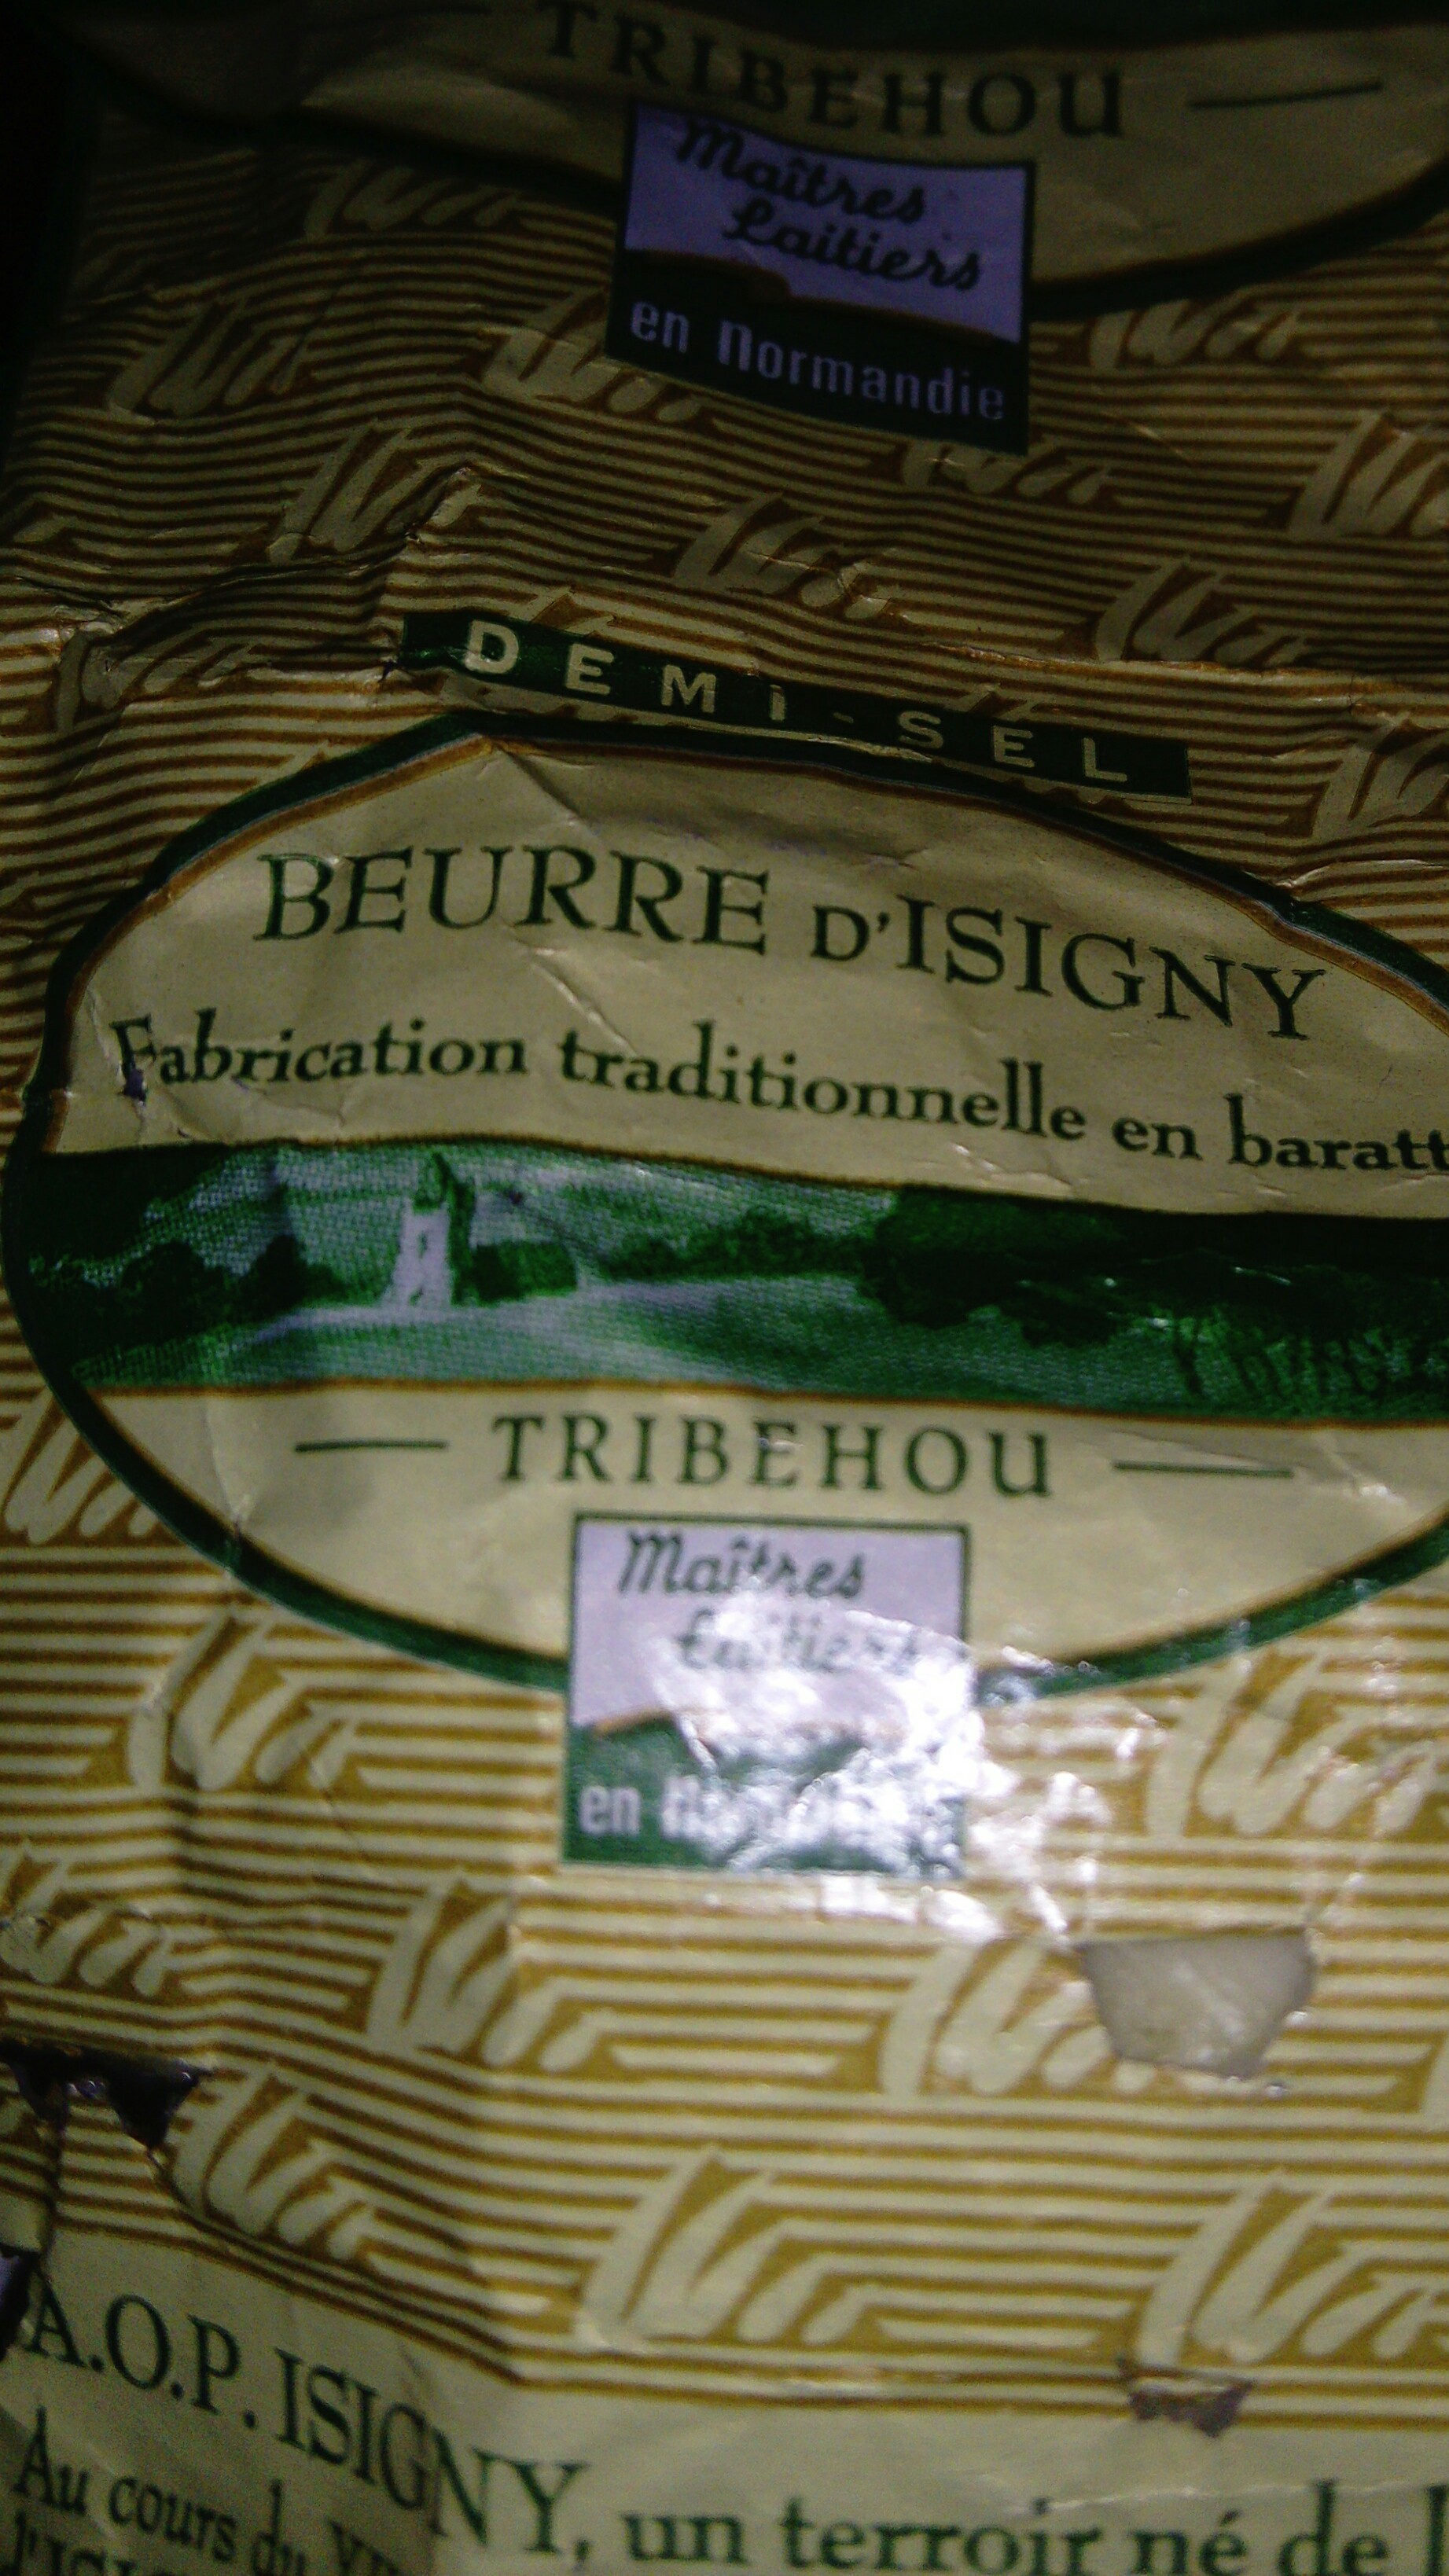 beurre d'isigny - Product - fr